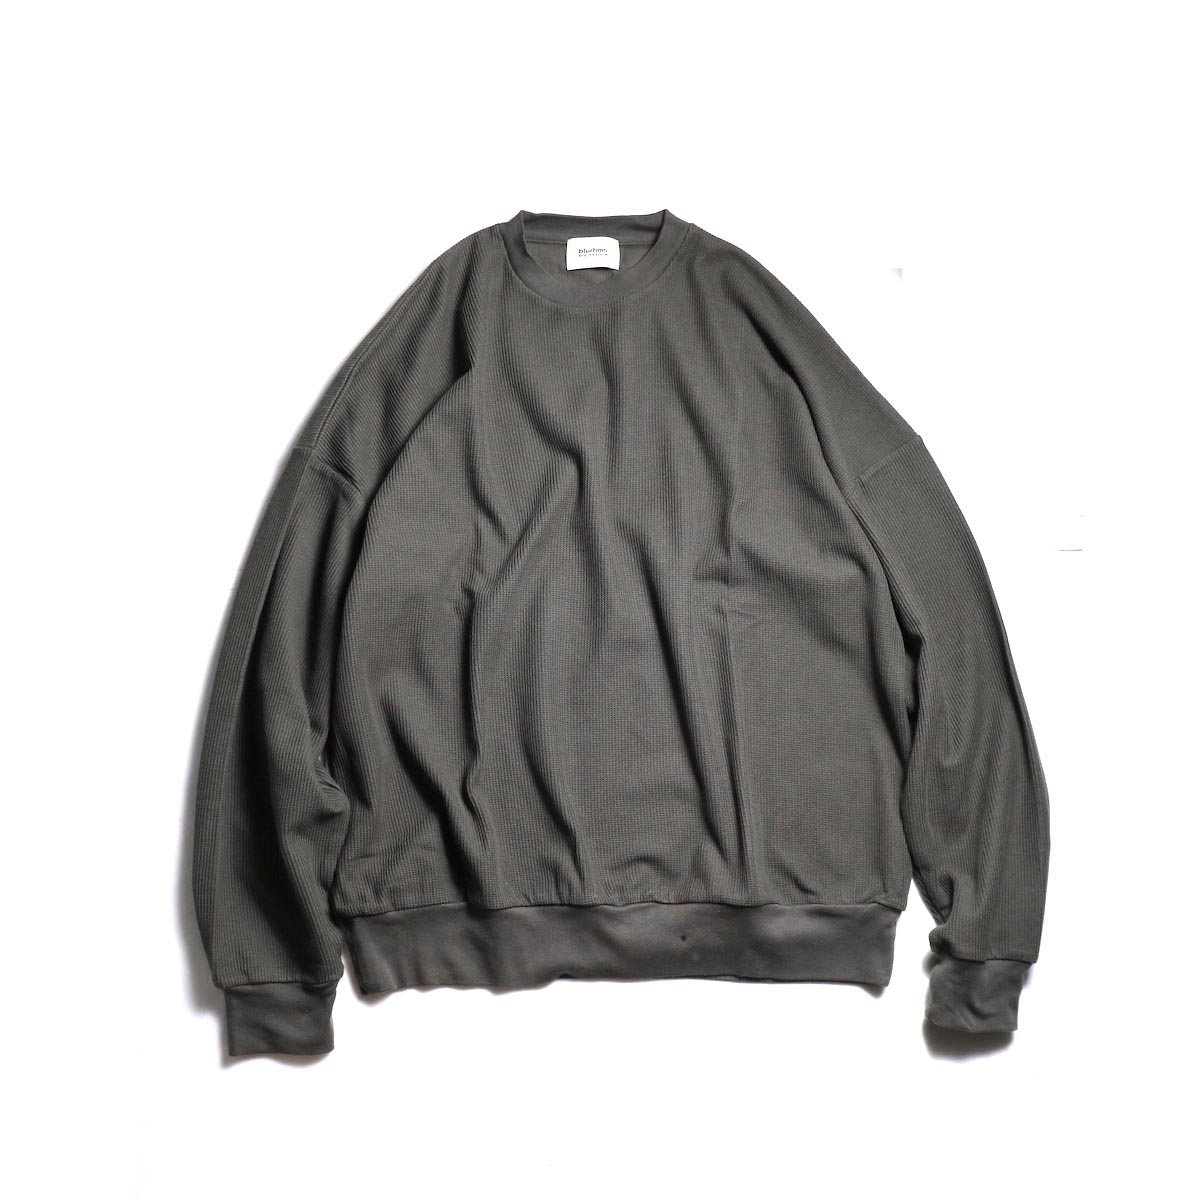 blurhms / New Rough & Smooth Thermal P/O Loose Fit -Charcoal